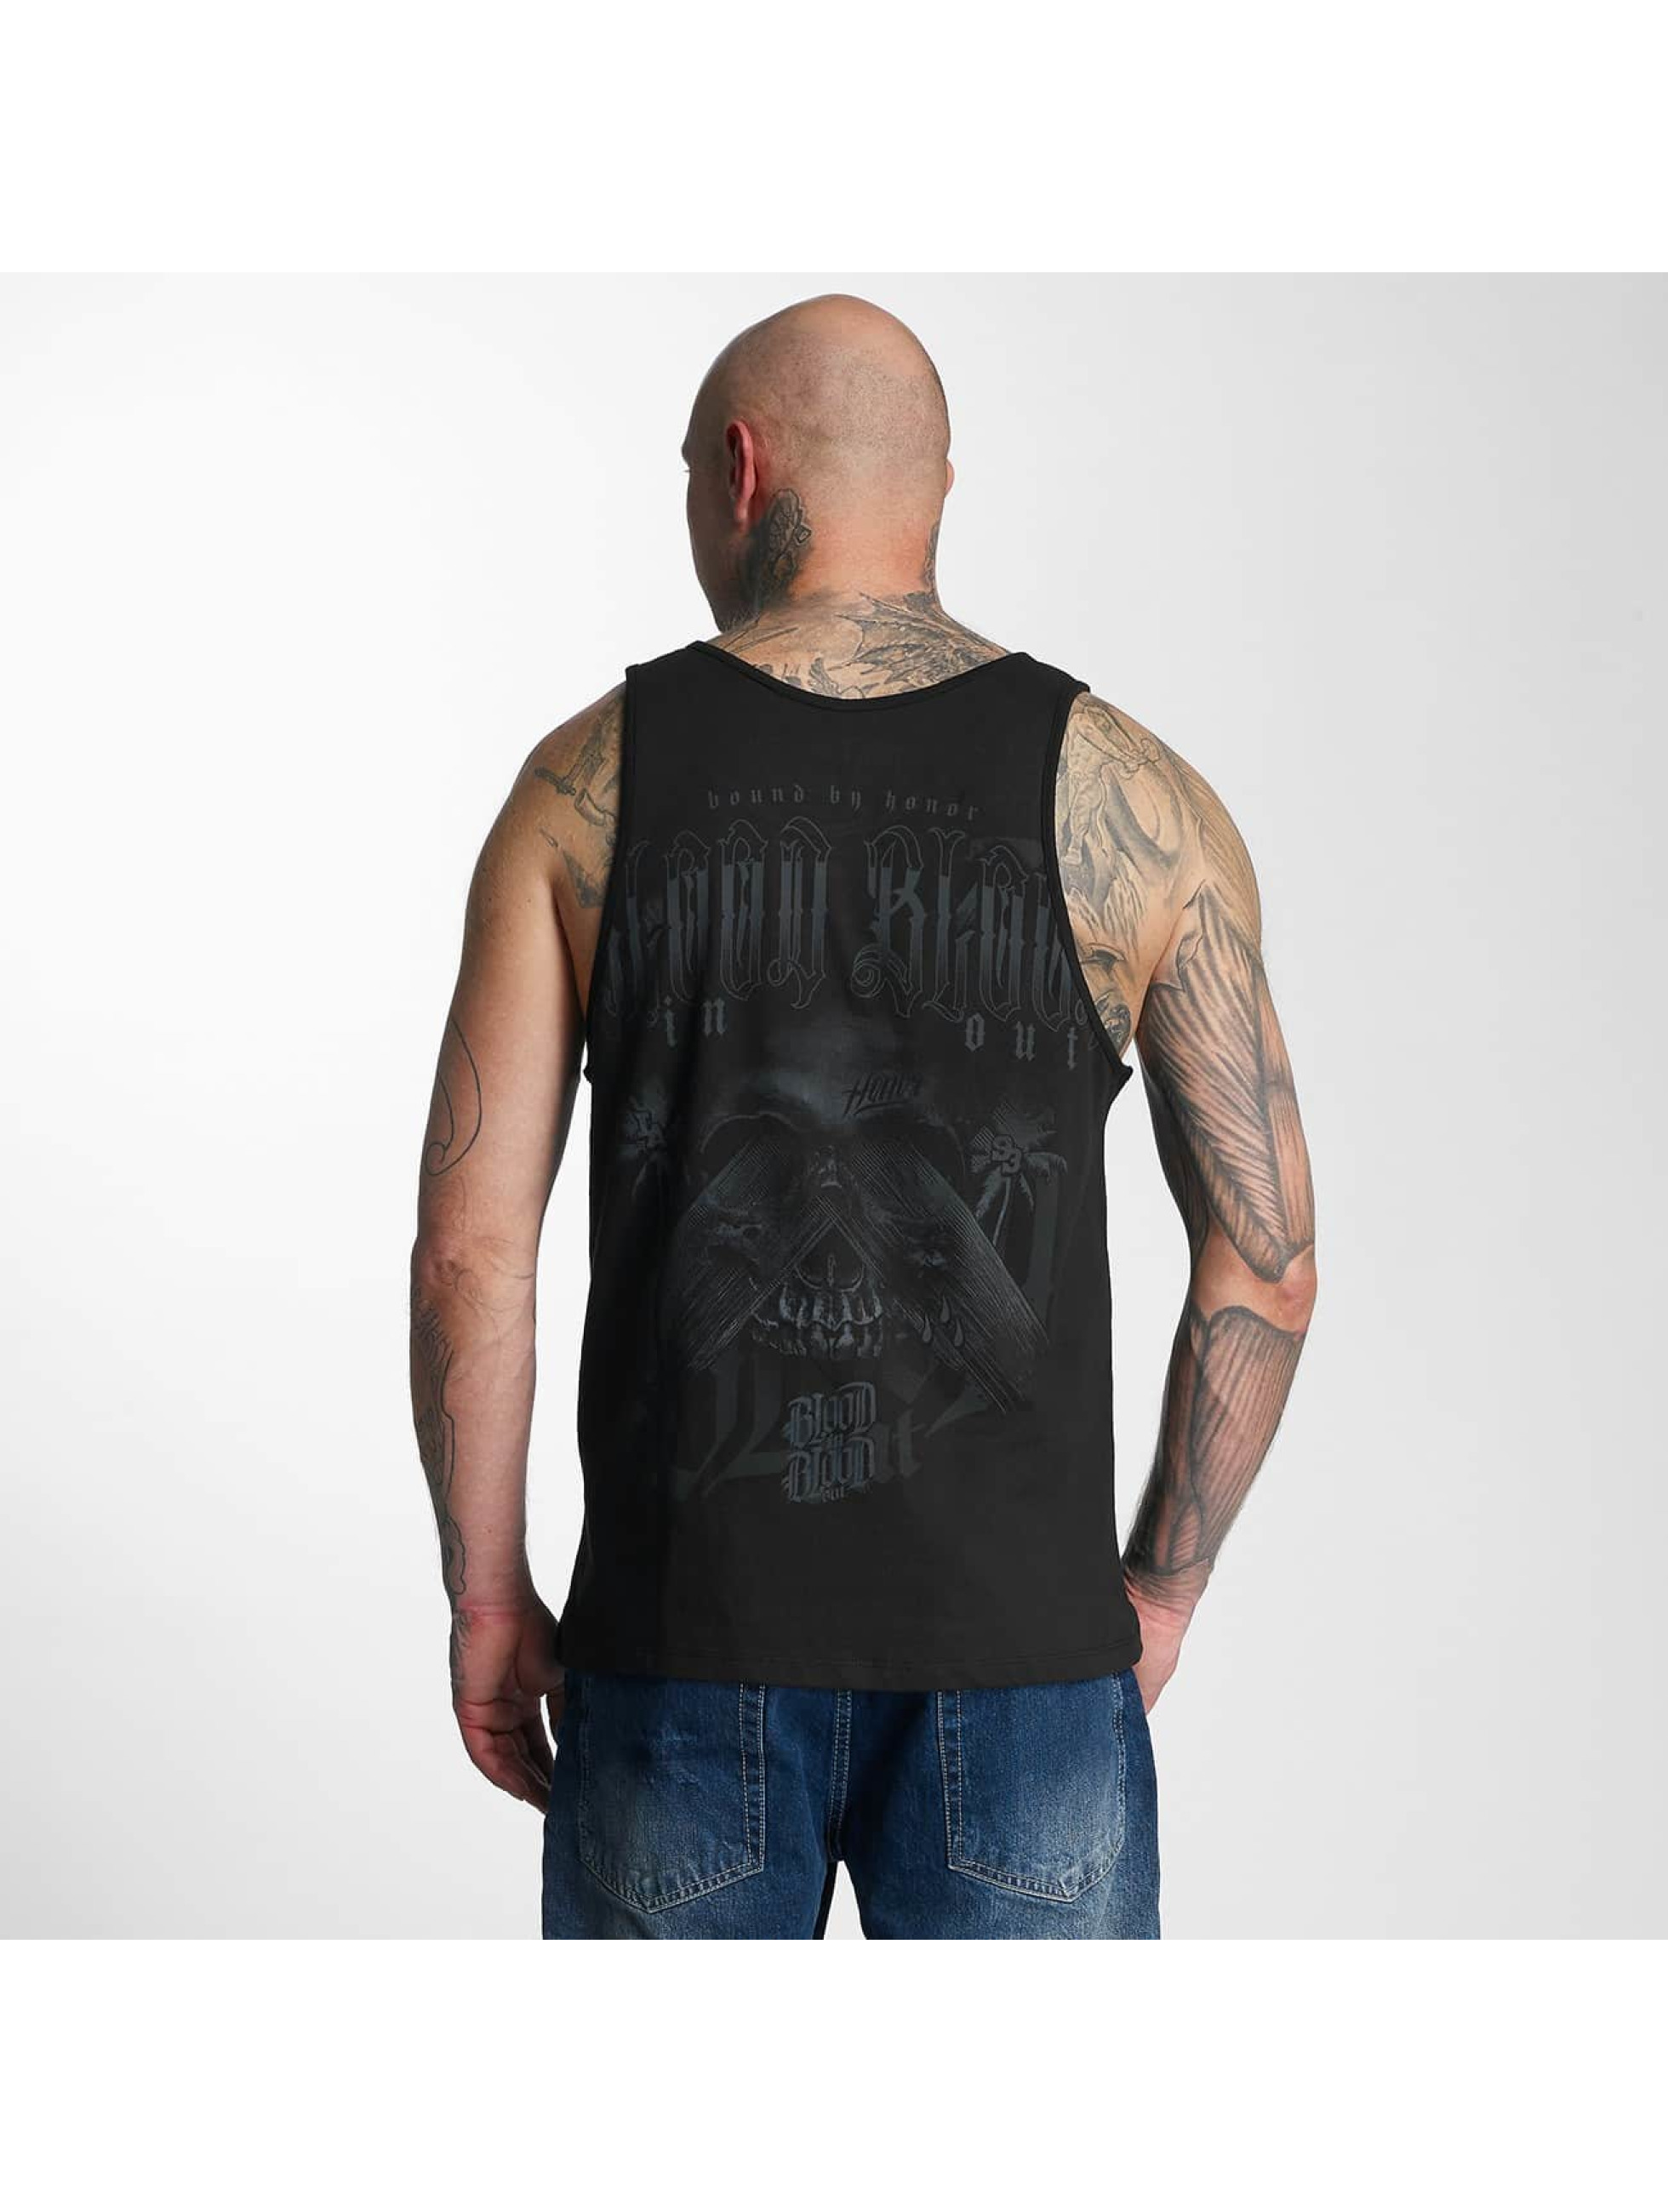 Blood In Blood Out Tank Tops Blood Out Black Honor black